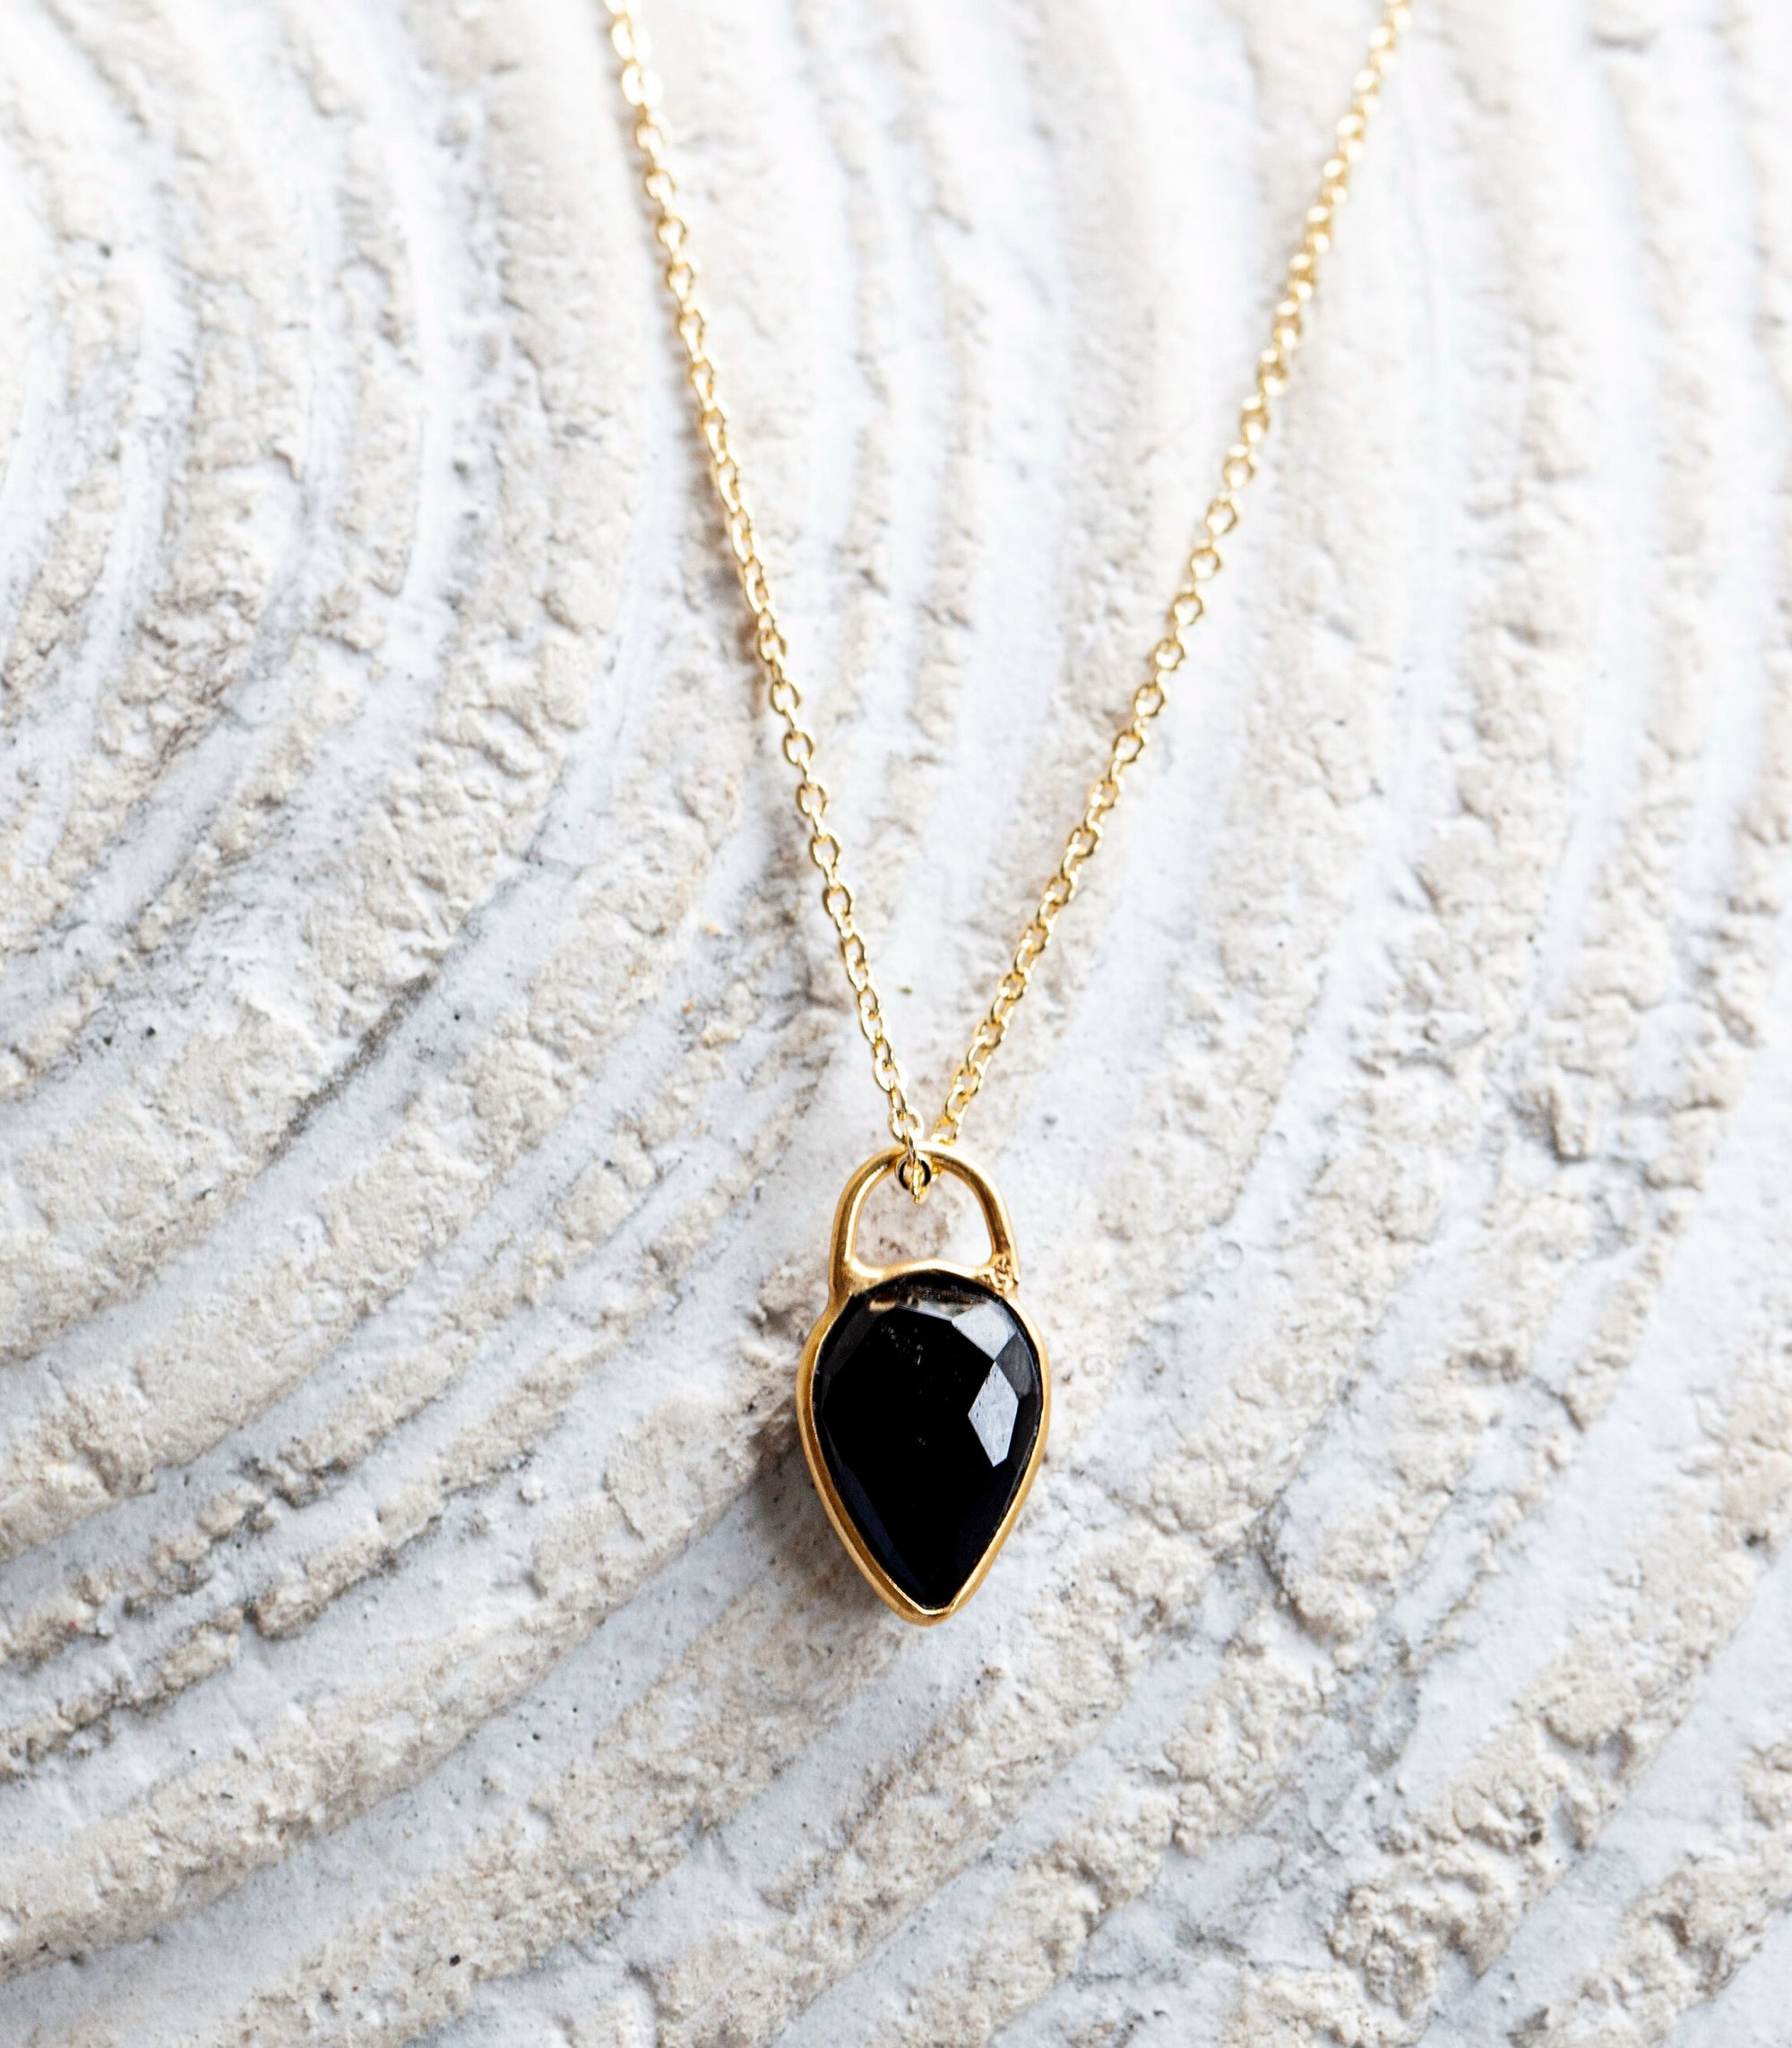 Calm Chakra Achiever Necklace - 12mm Black Onyx Teardrop Pendant ACH-AU2